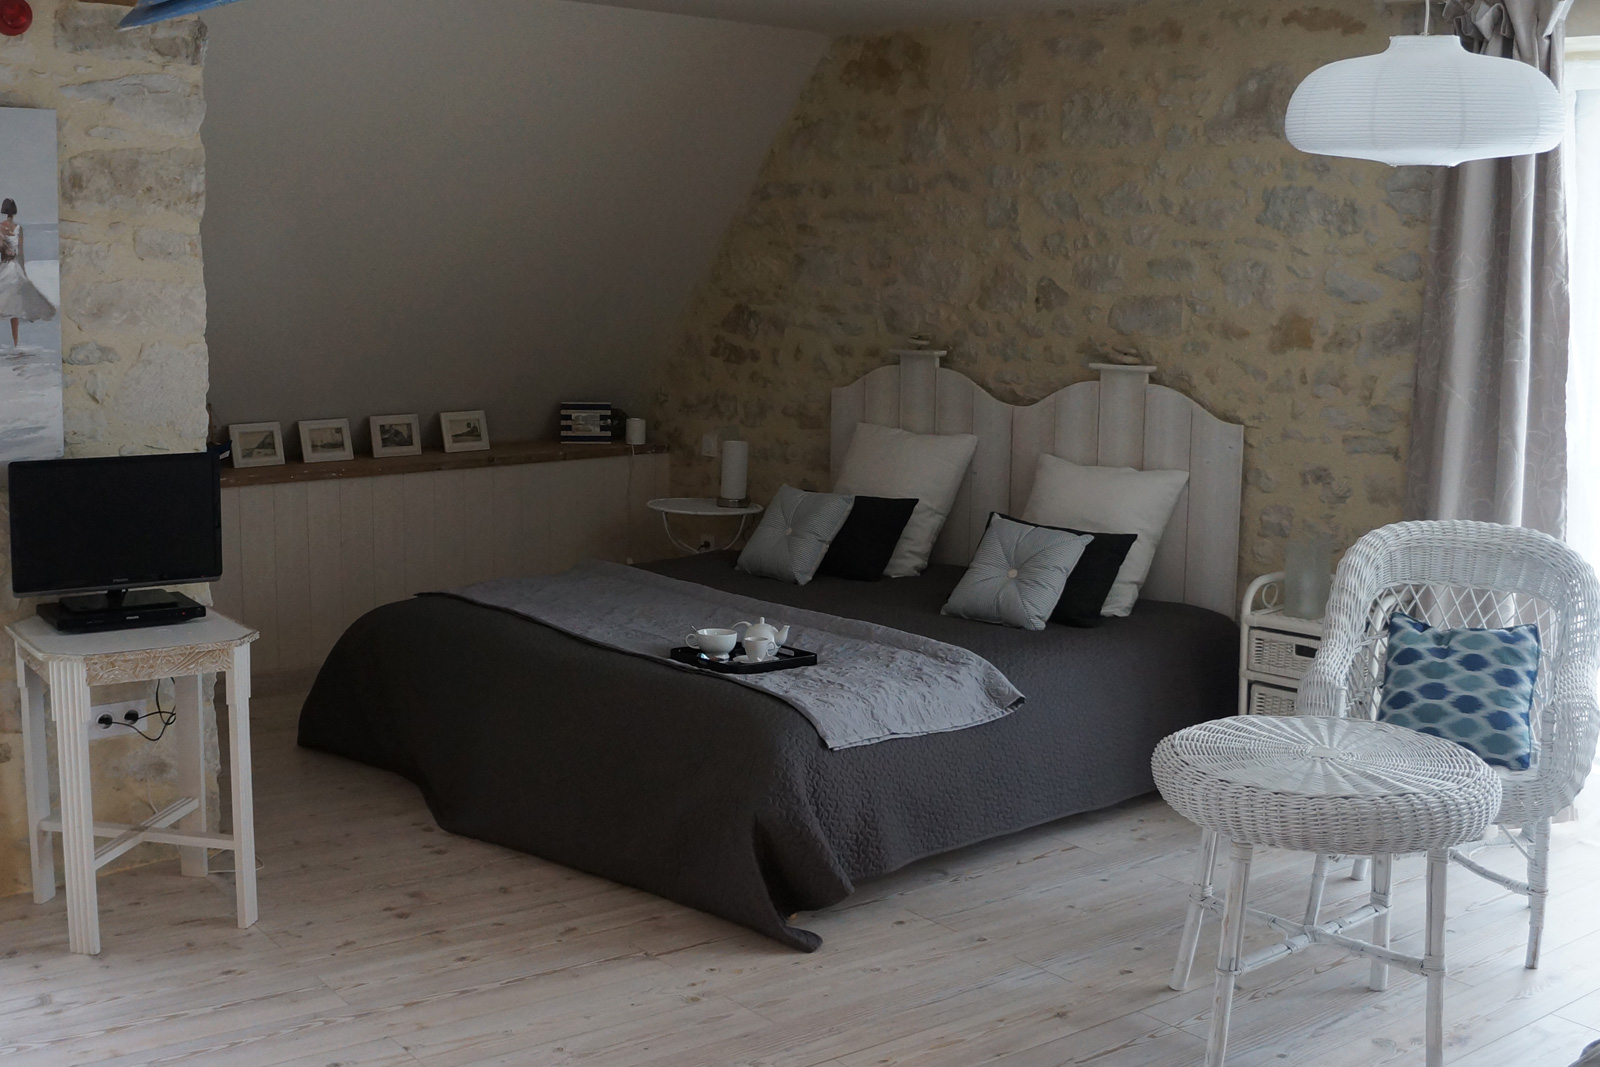 Chambre DHotes Luxe Normandie – Chaios.com